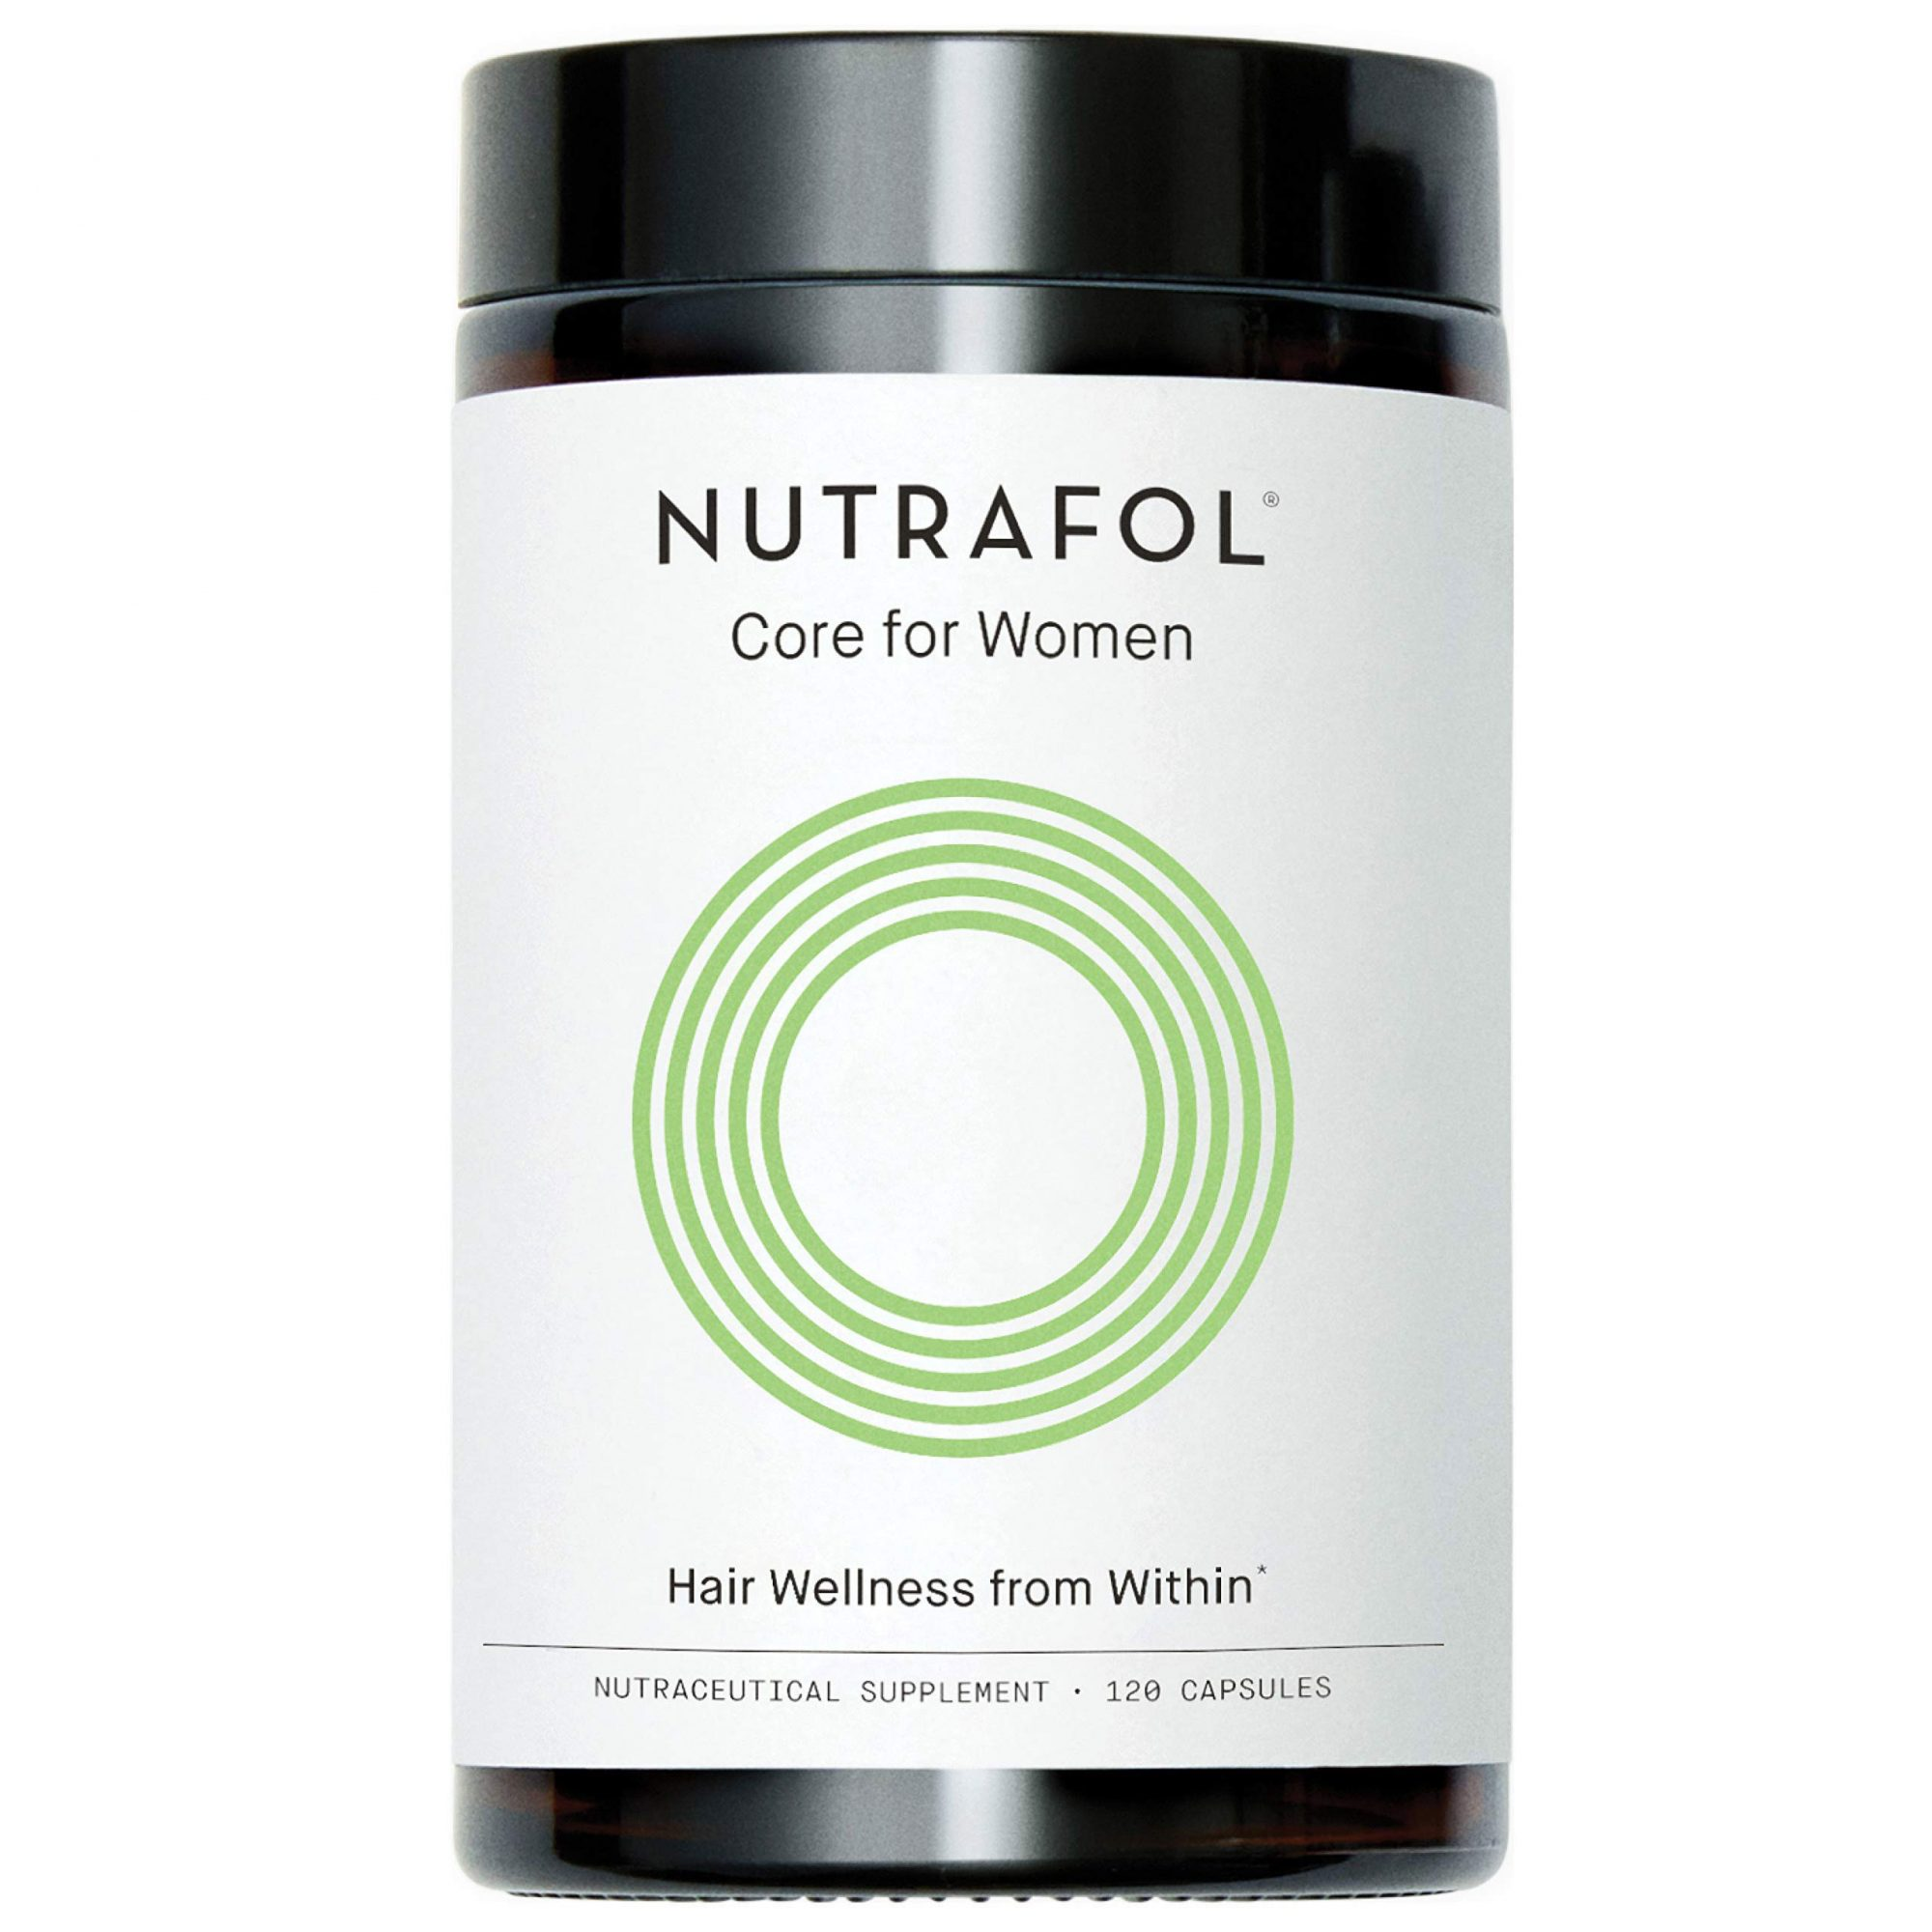 NUTRAFOL Core for Women Plus